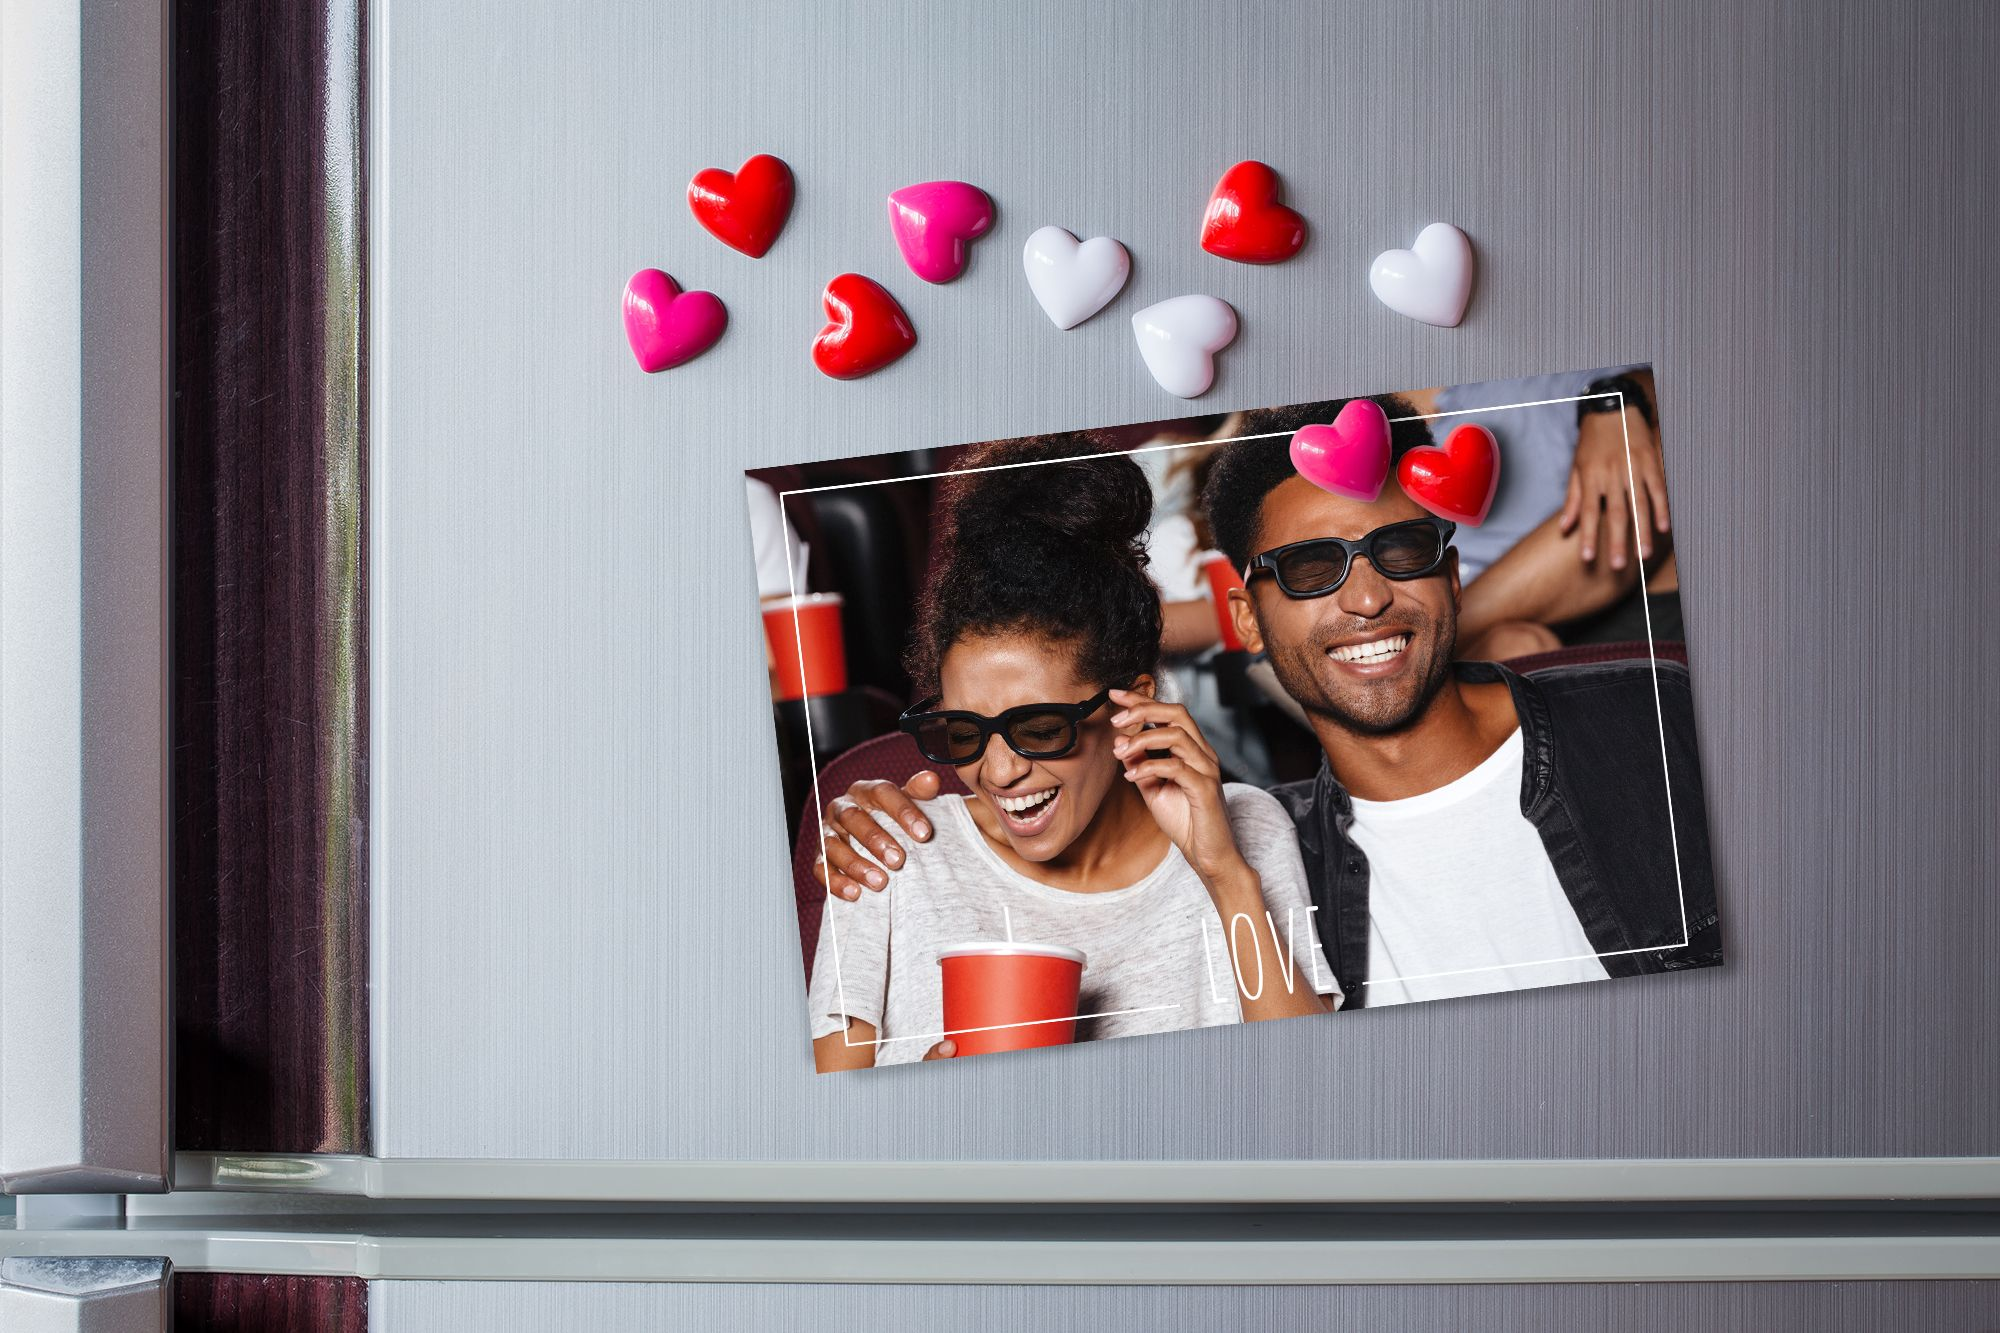 The classic photo card makes a romantic gift for any Valentine's Day